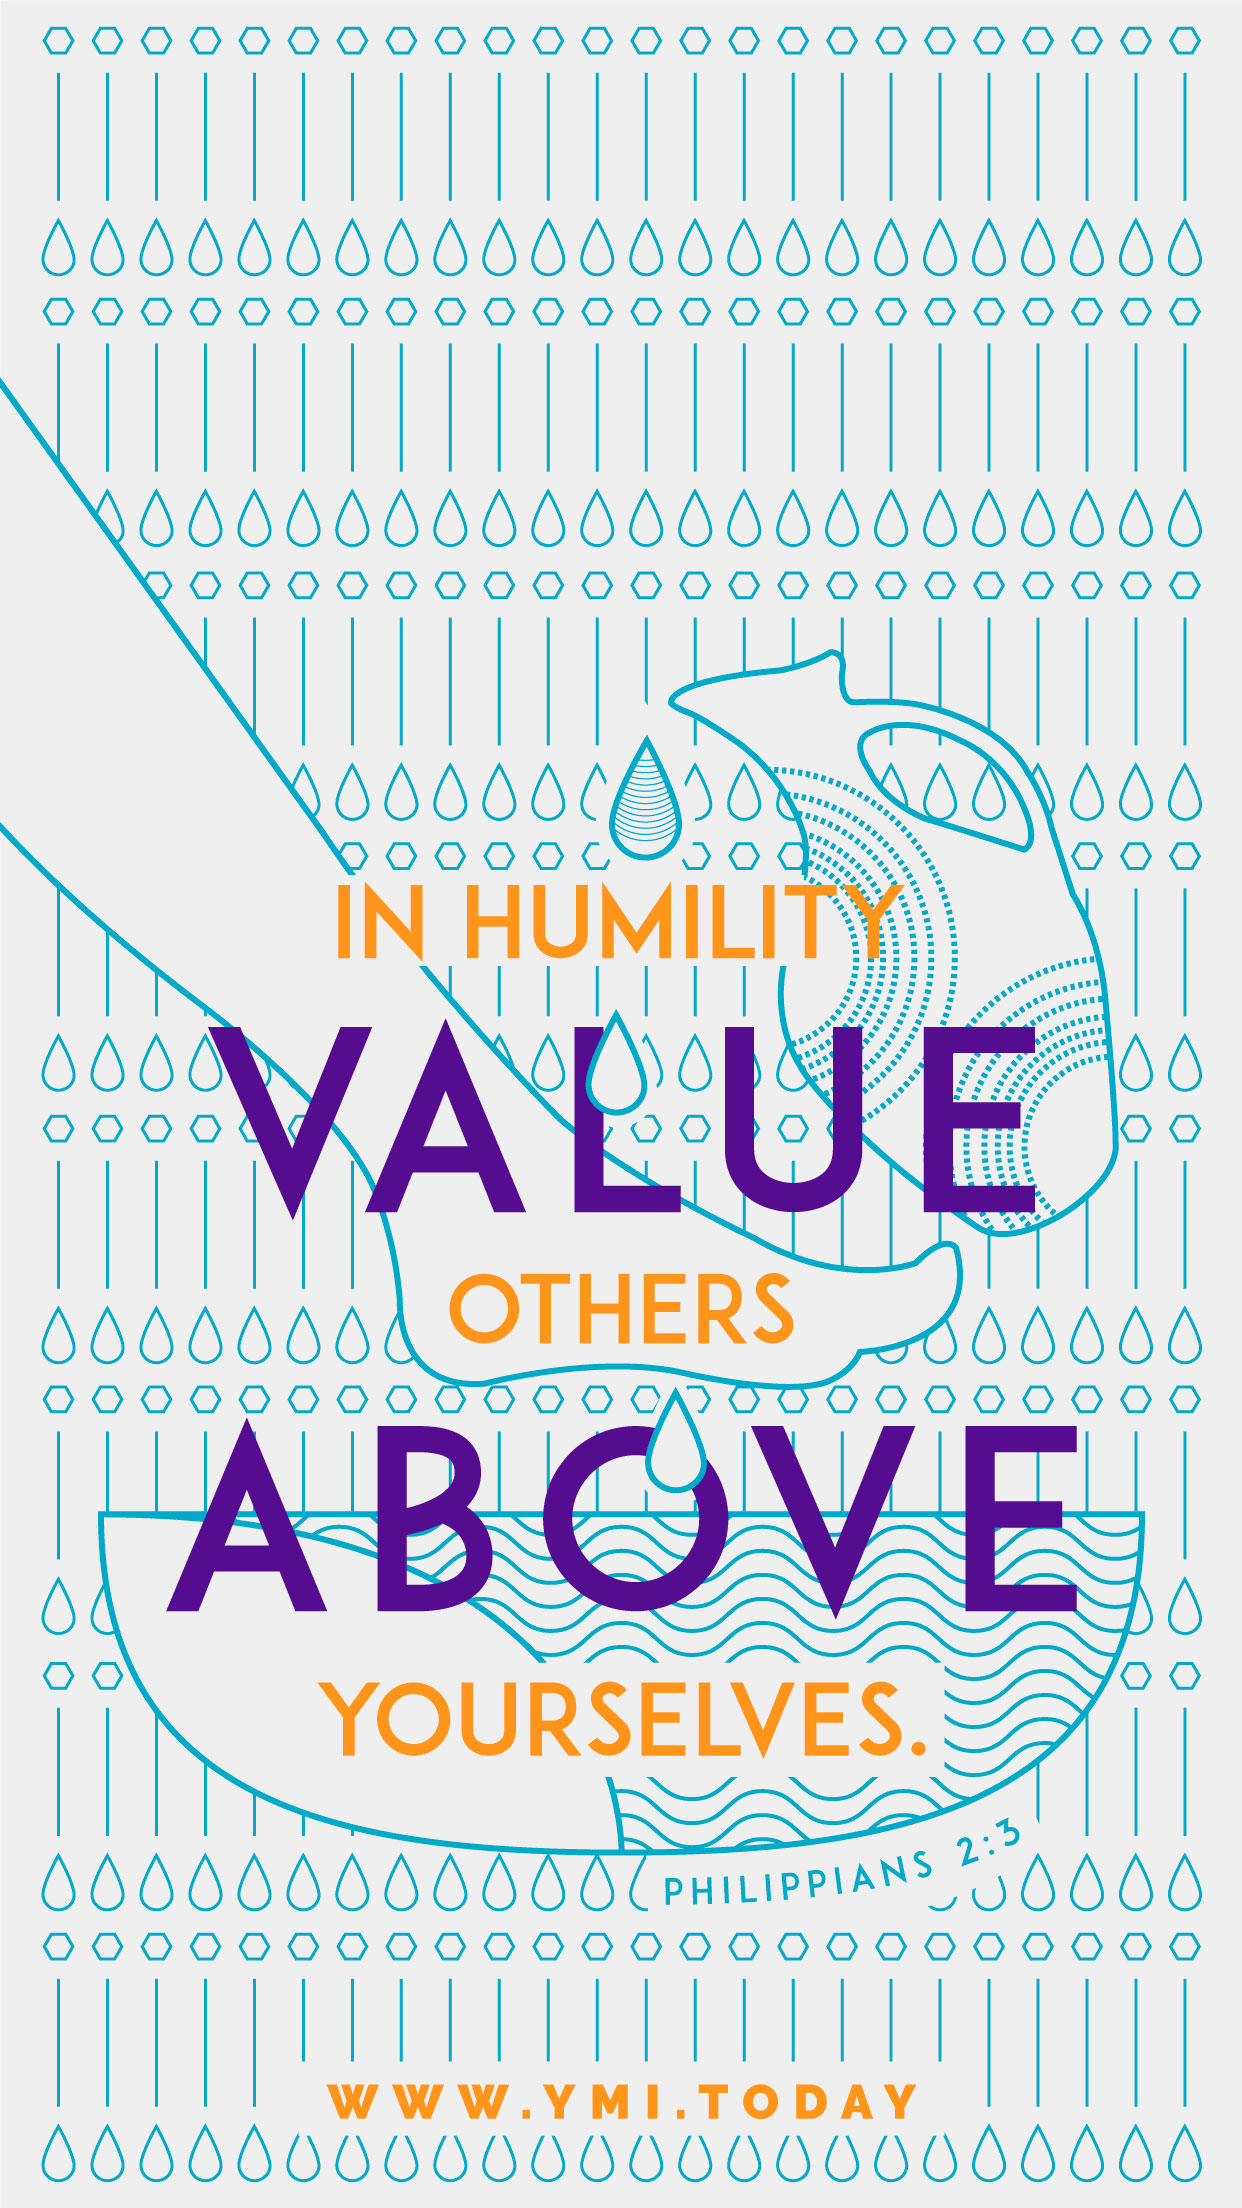 YMI March 2016 Phone Lockscreen - In humility, value others above yourselves. - Philippians 2:3